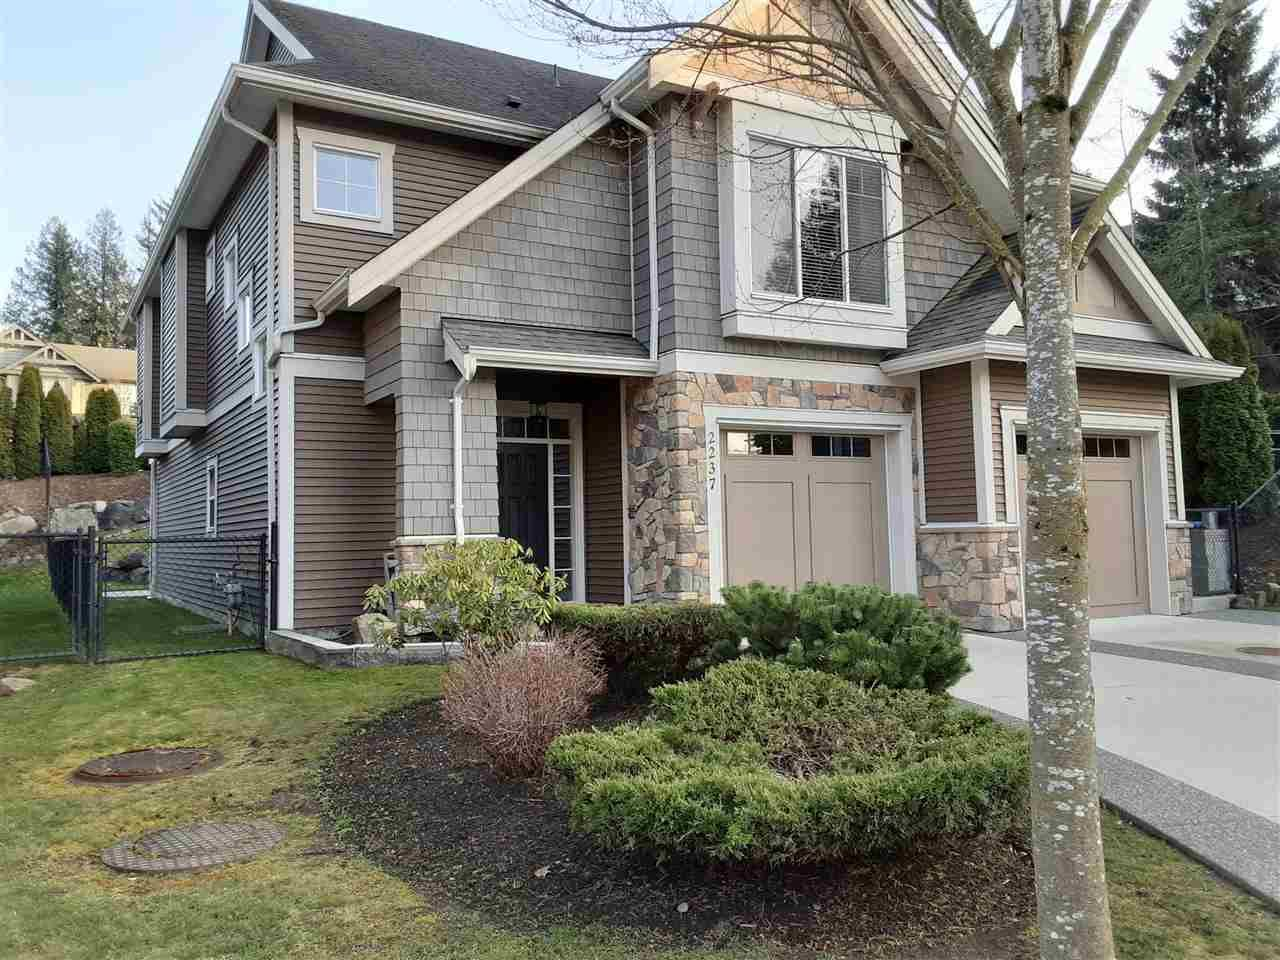 """Photo 3: Photos: 2237 CAMERON Crescent in Abbotsford: Abbotsford East House for sale in """"DEERWOOD ESTATES"""" : MLS®# R2562086"""